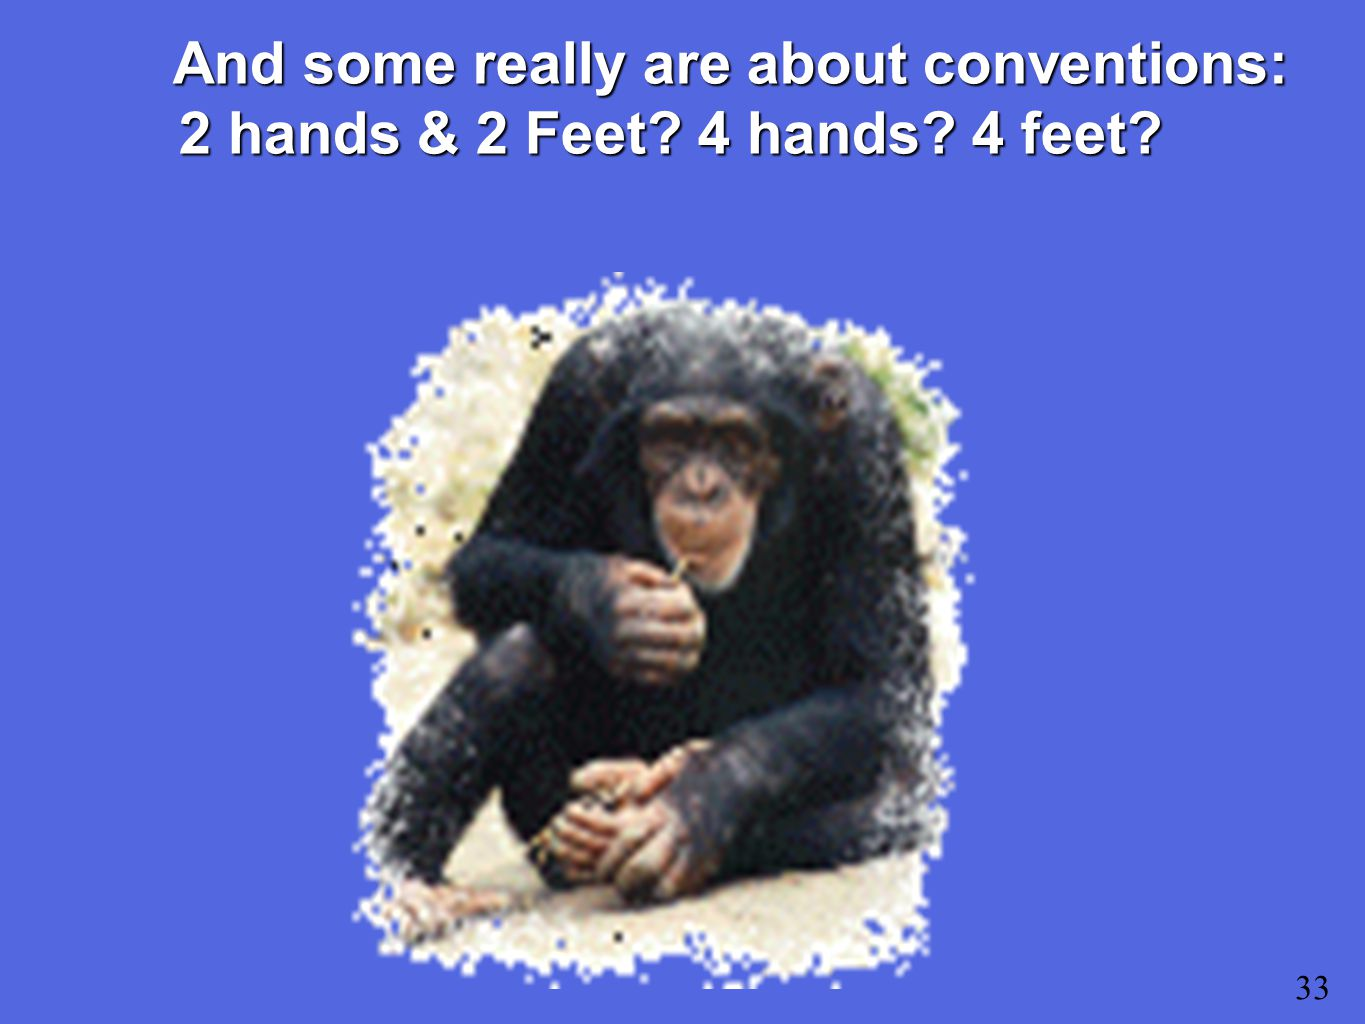 33 And some really are about conventions: 2 hands & 2 Feet 4 hands 4 feet